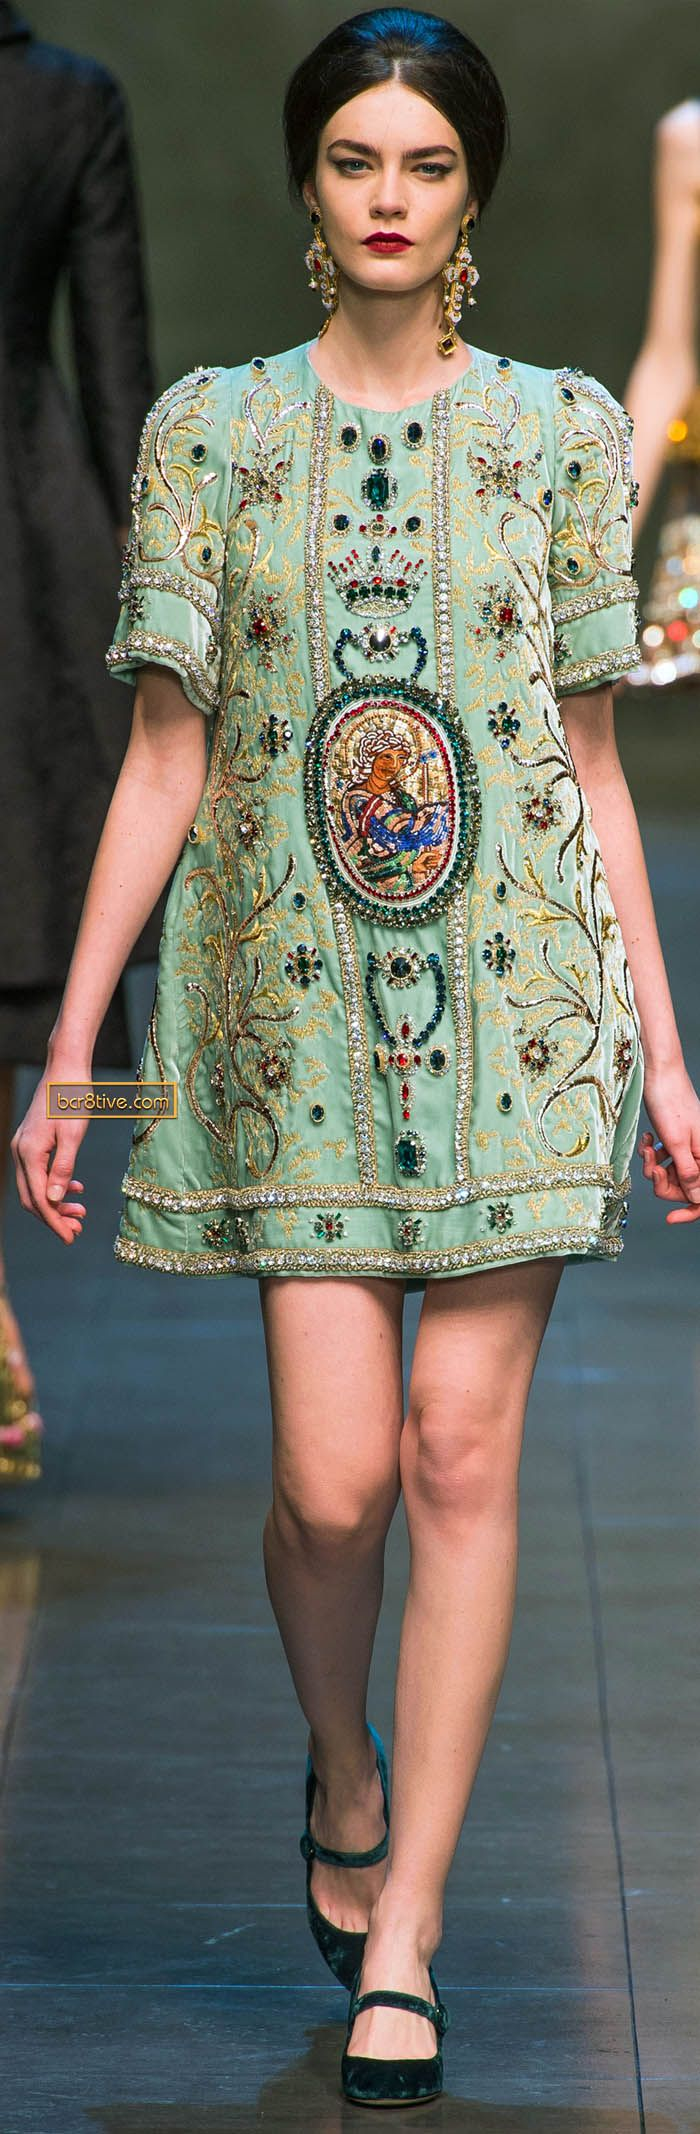 Dolce & Gabanna Fall Winter 2013-14 #embroidery